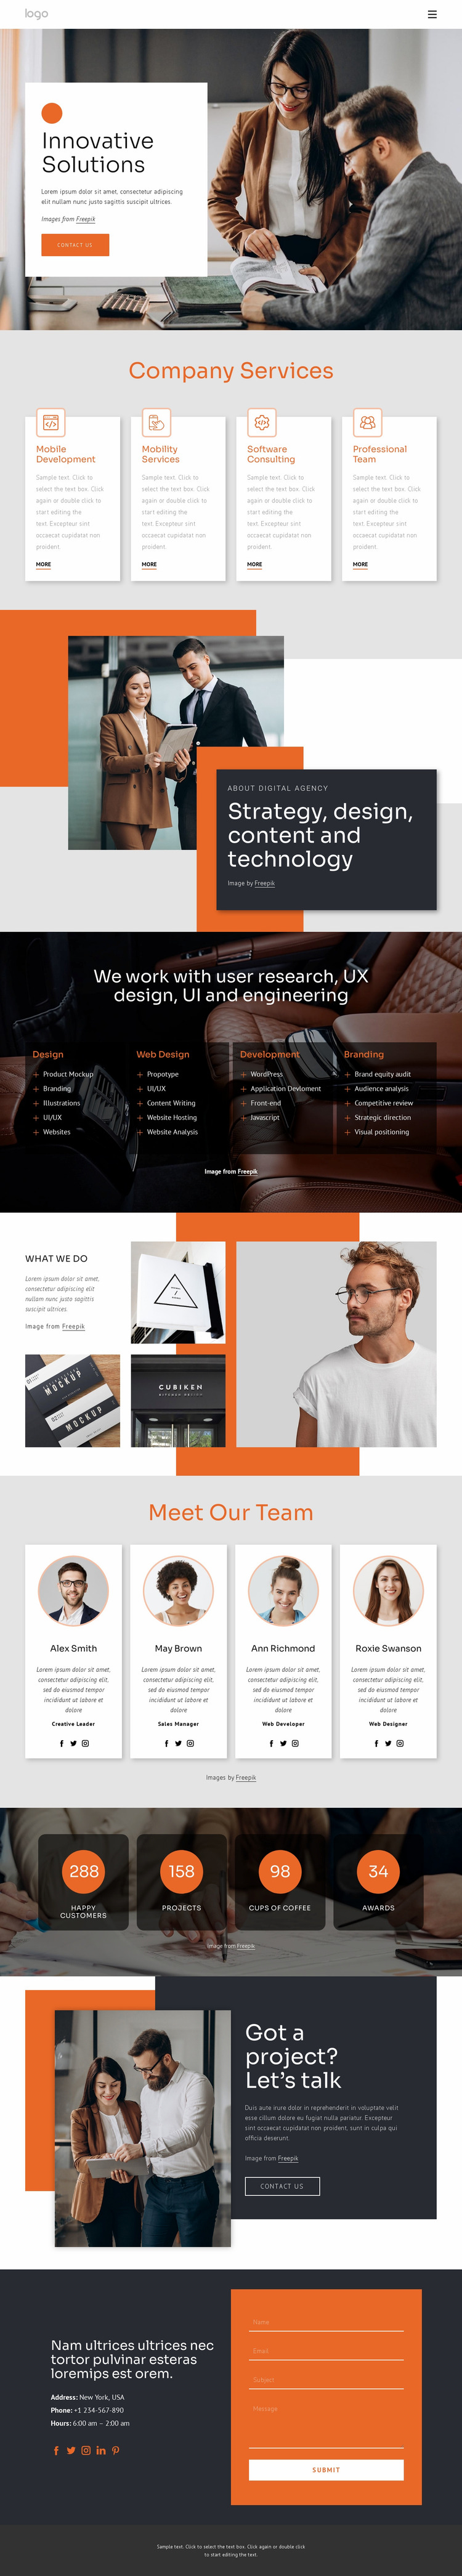 Innovative solutions and support Website Mockup